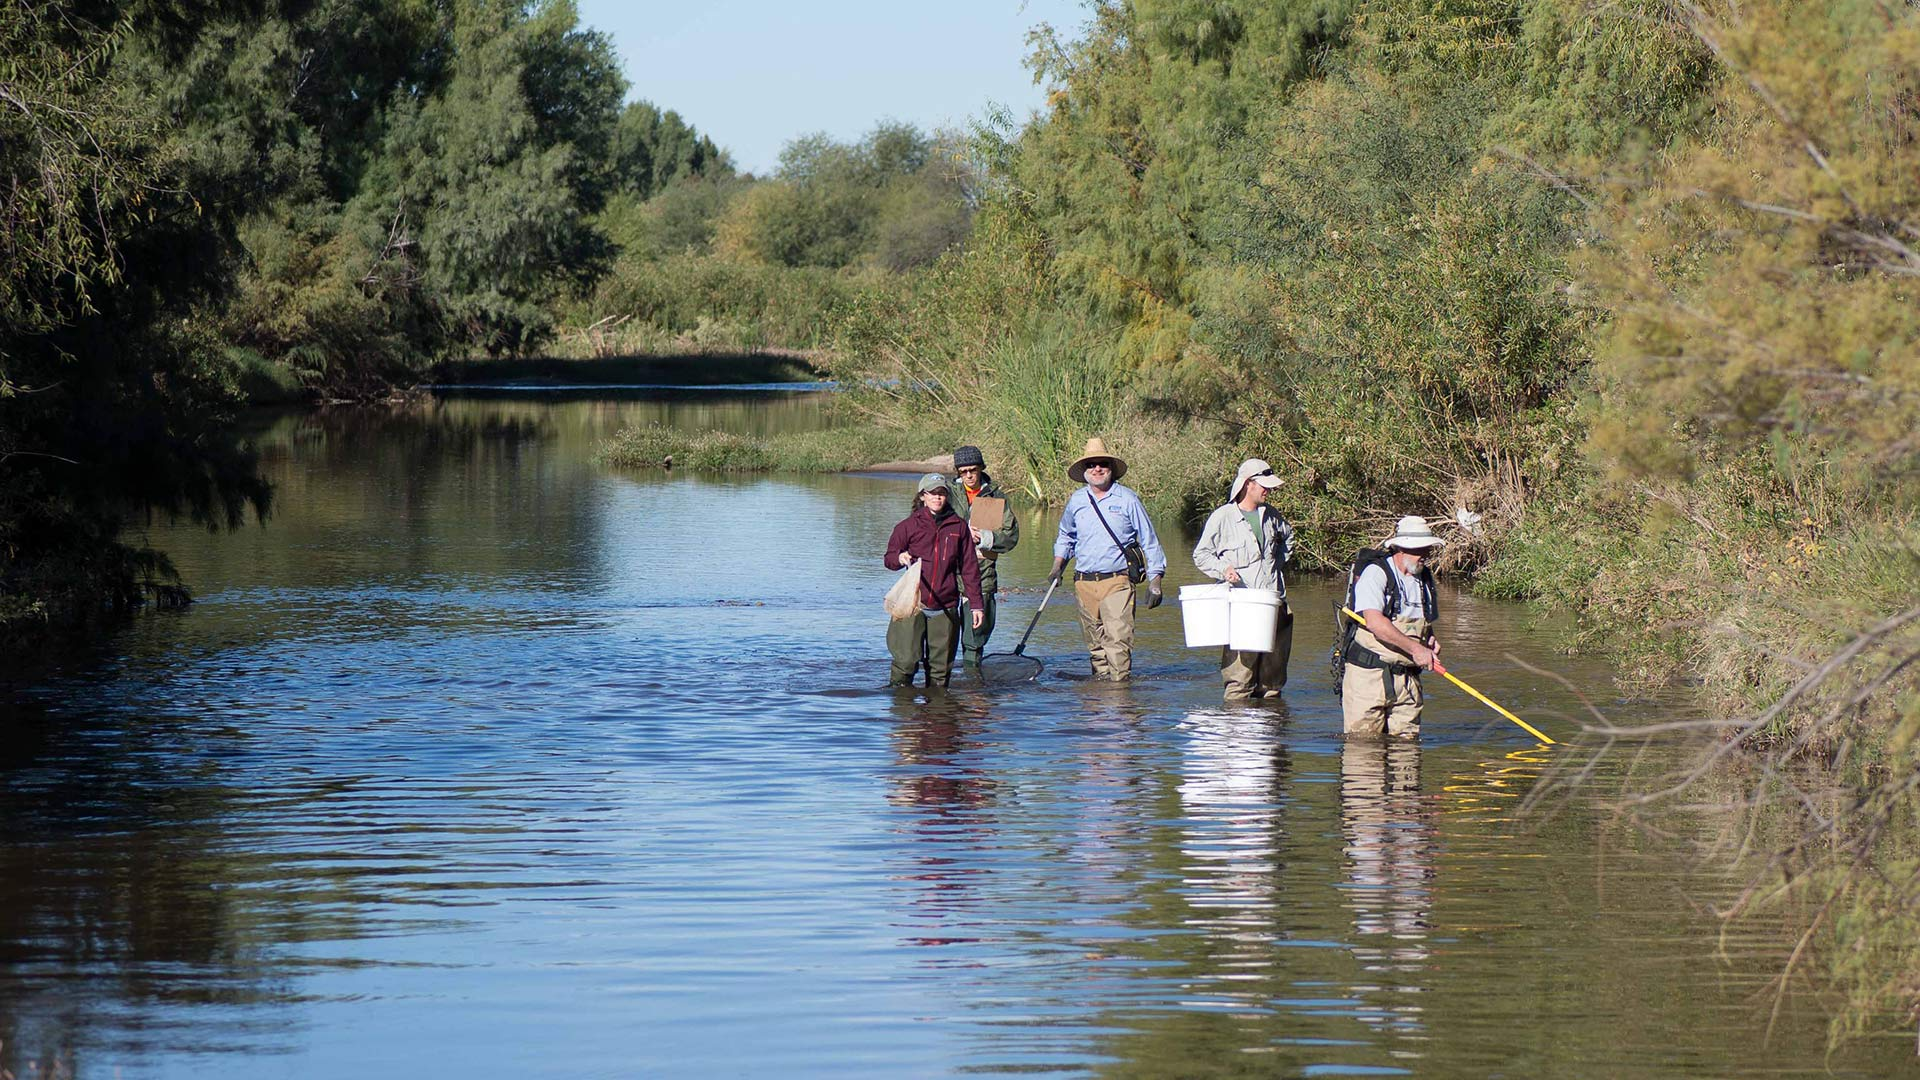 The fish survey team in the Santa Cruz River in Marana, 2015.